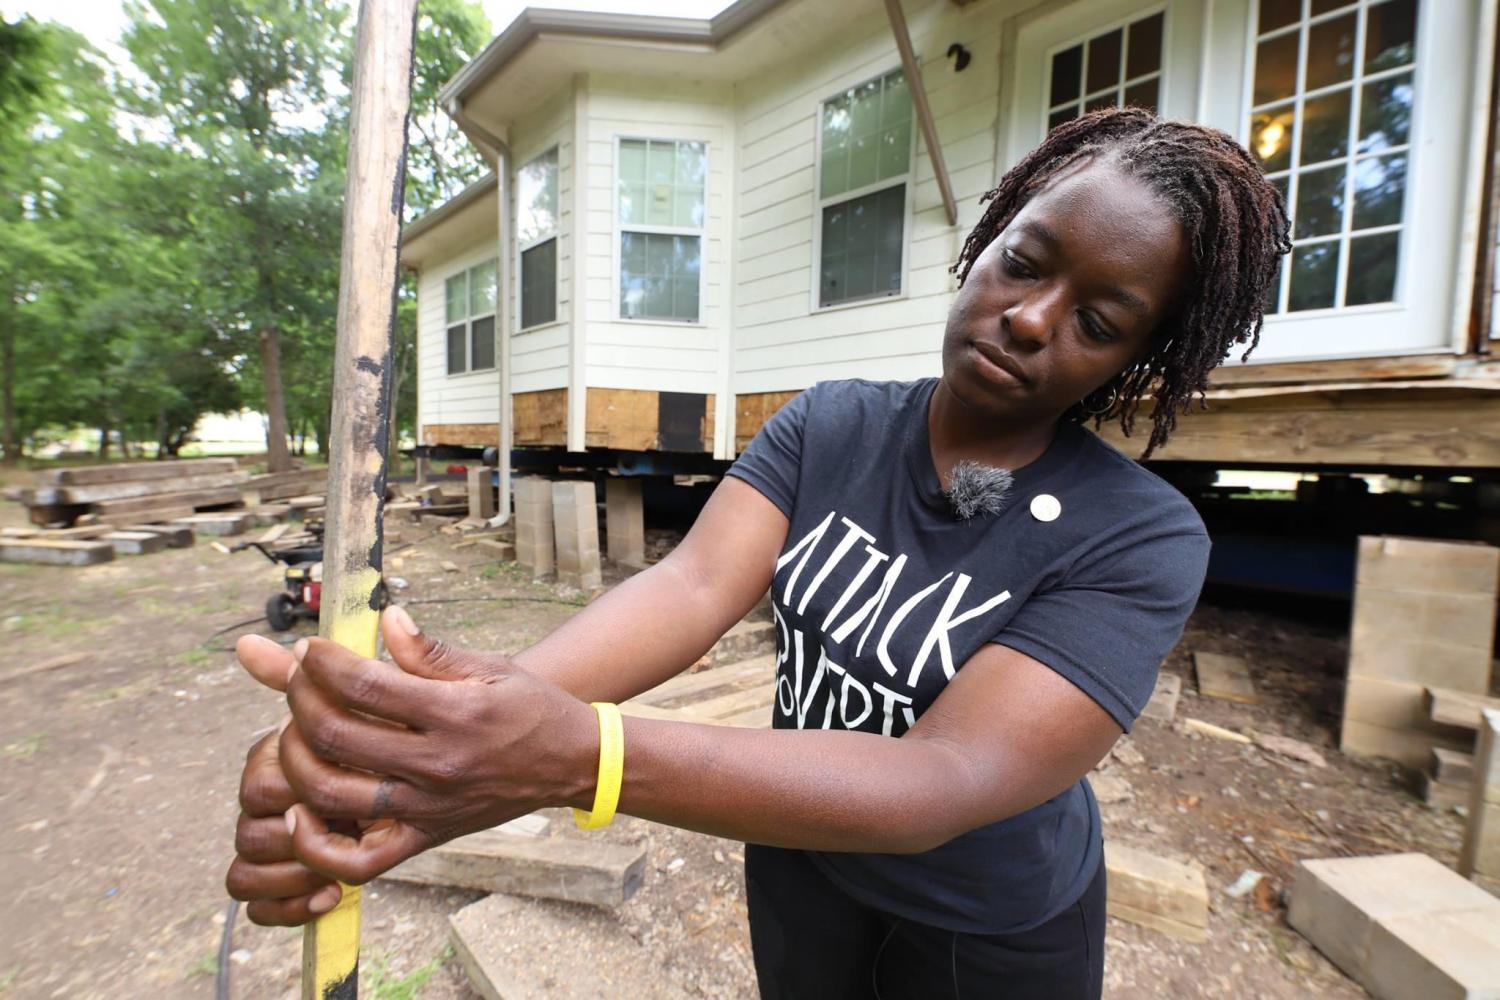 Recent disasters reveal racial discrimination in FEMA aid